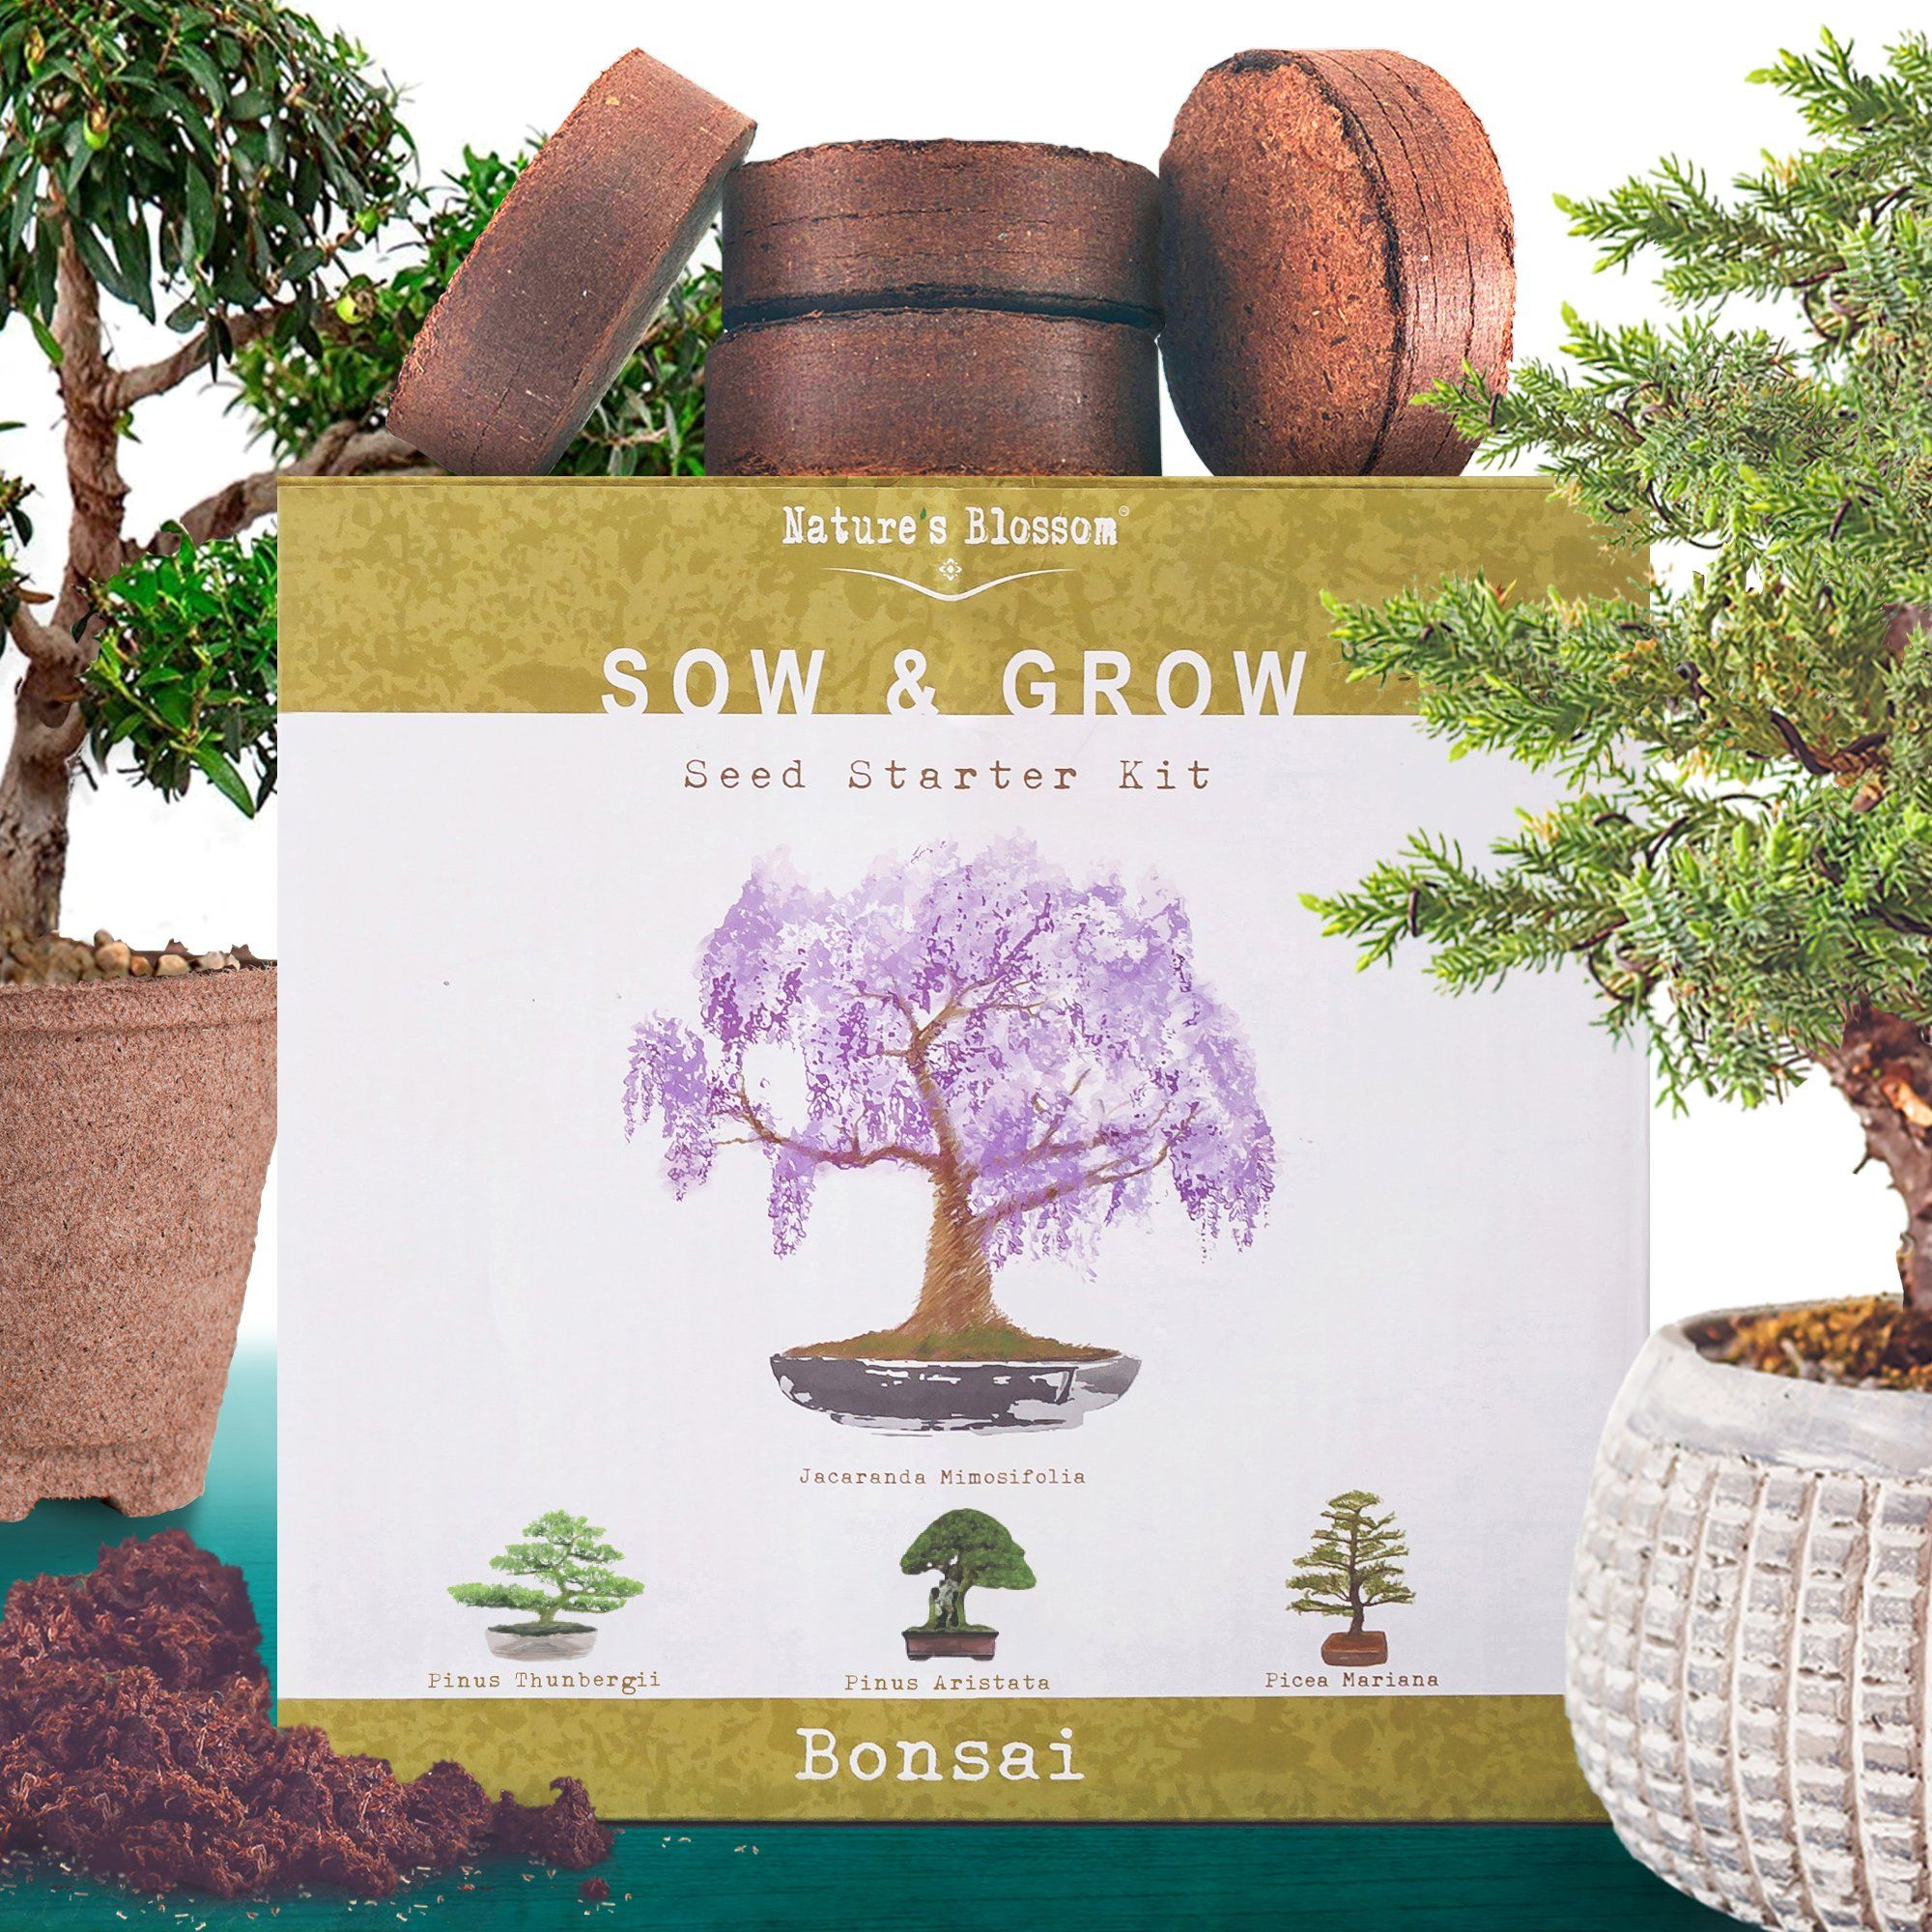 Nature S Blossom Bonsai Tree Kit Grow 4 Types Of Trees From Seed In 2020 Bonsai Tree Types Bonsai Tree Tree Seeds